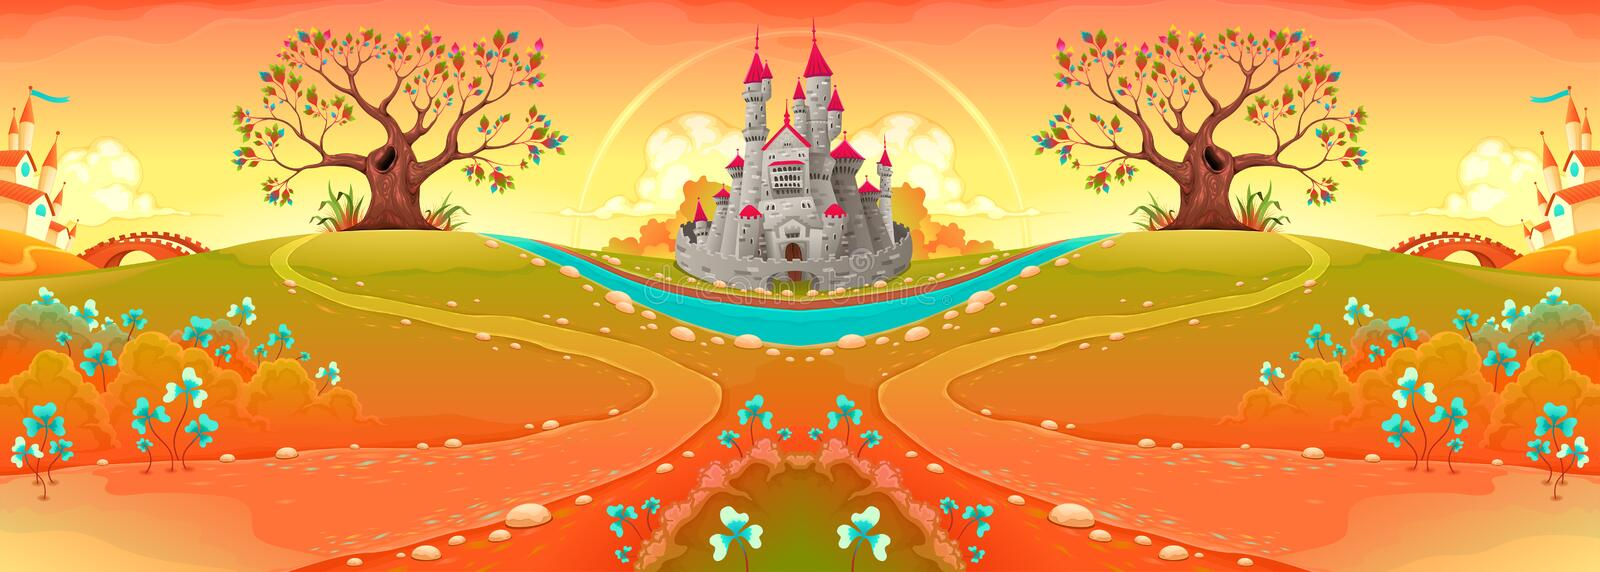 Countryside landscape with castle in the sunset stock illustration